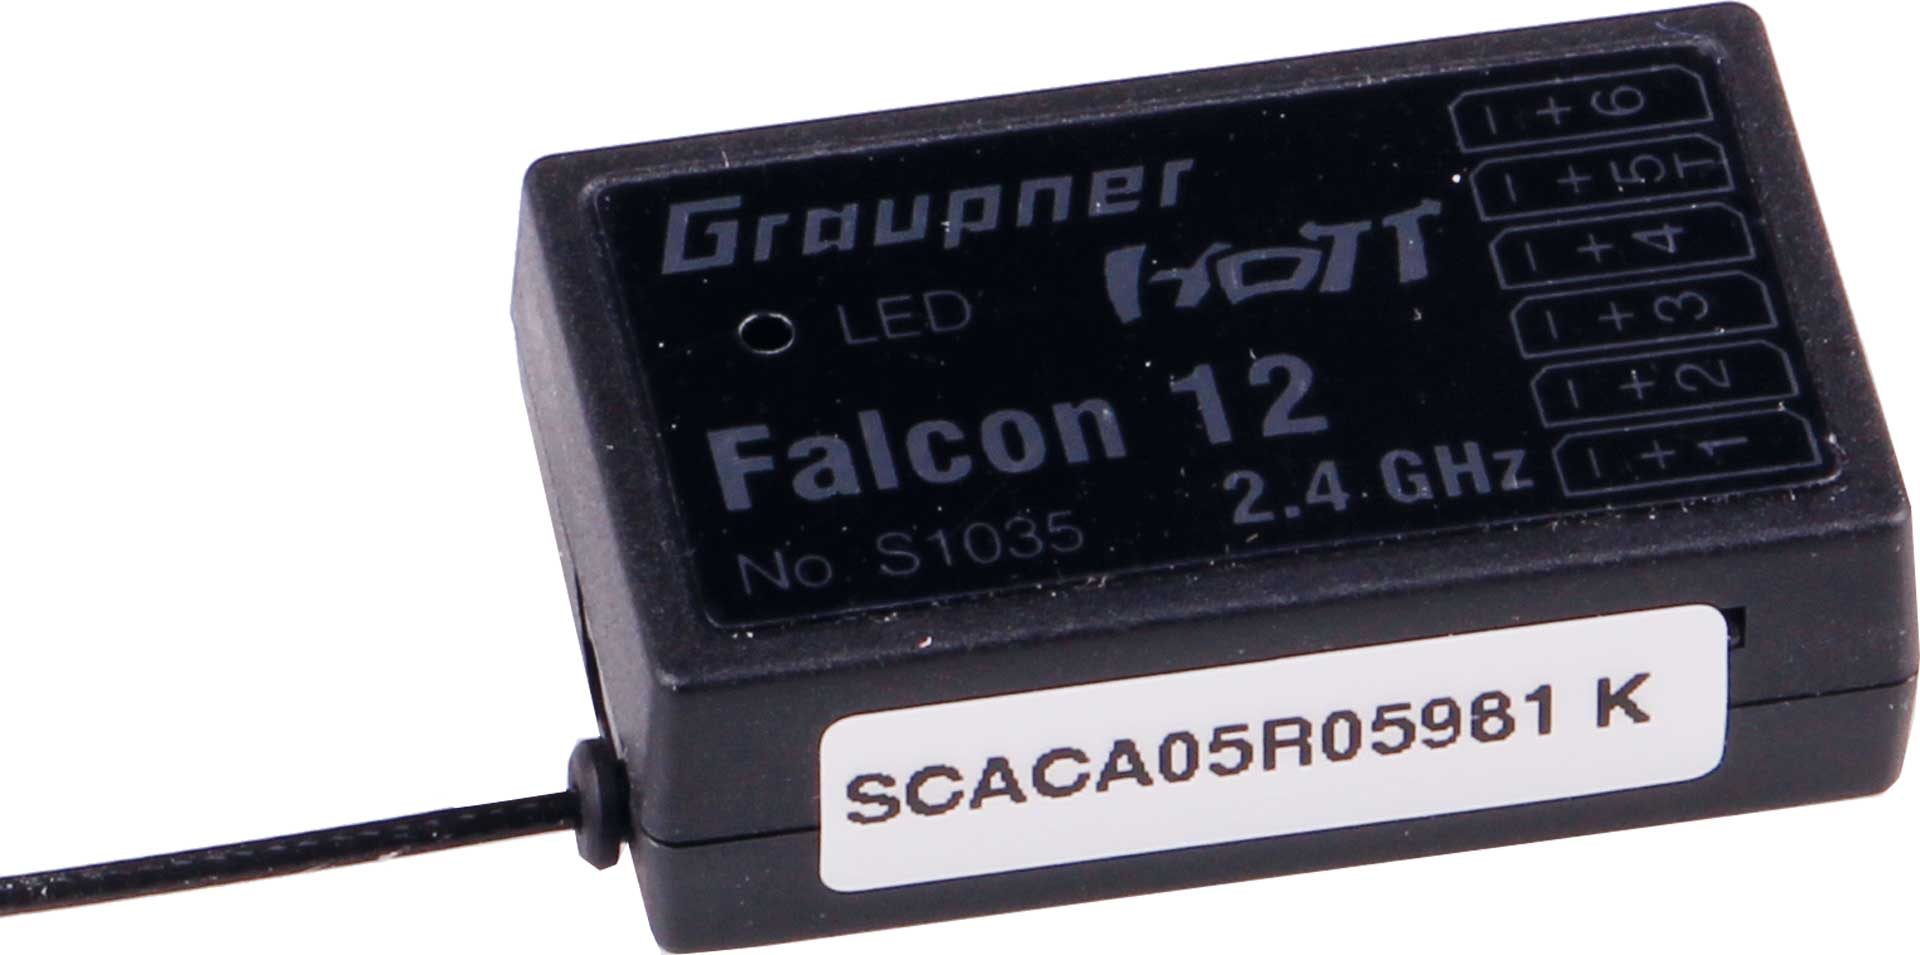 GRAUPNER FALCON 12 6-CHANNEL GYRO RECEIVER HOTT FOR SURFACE, HELI AND COPTER